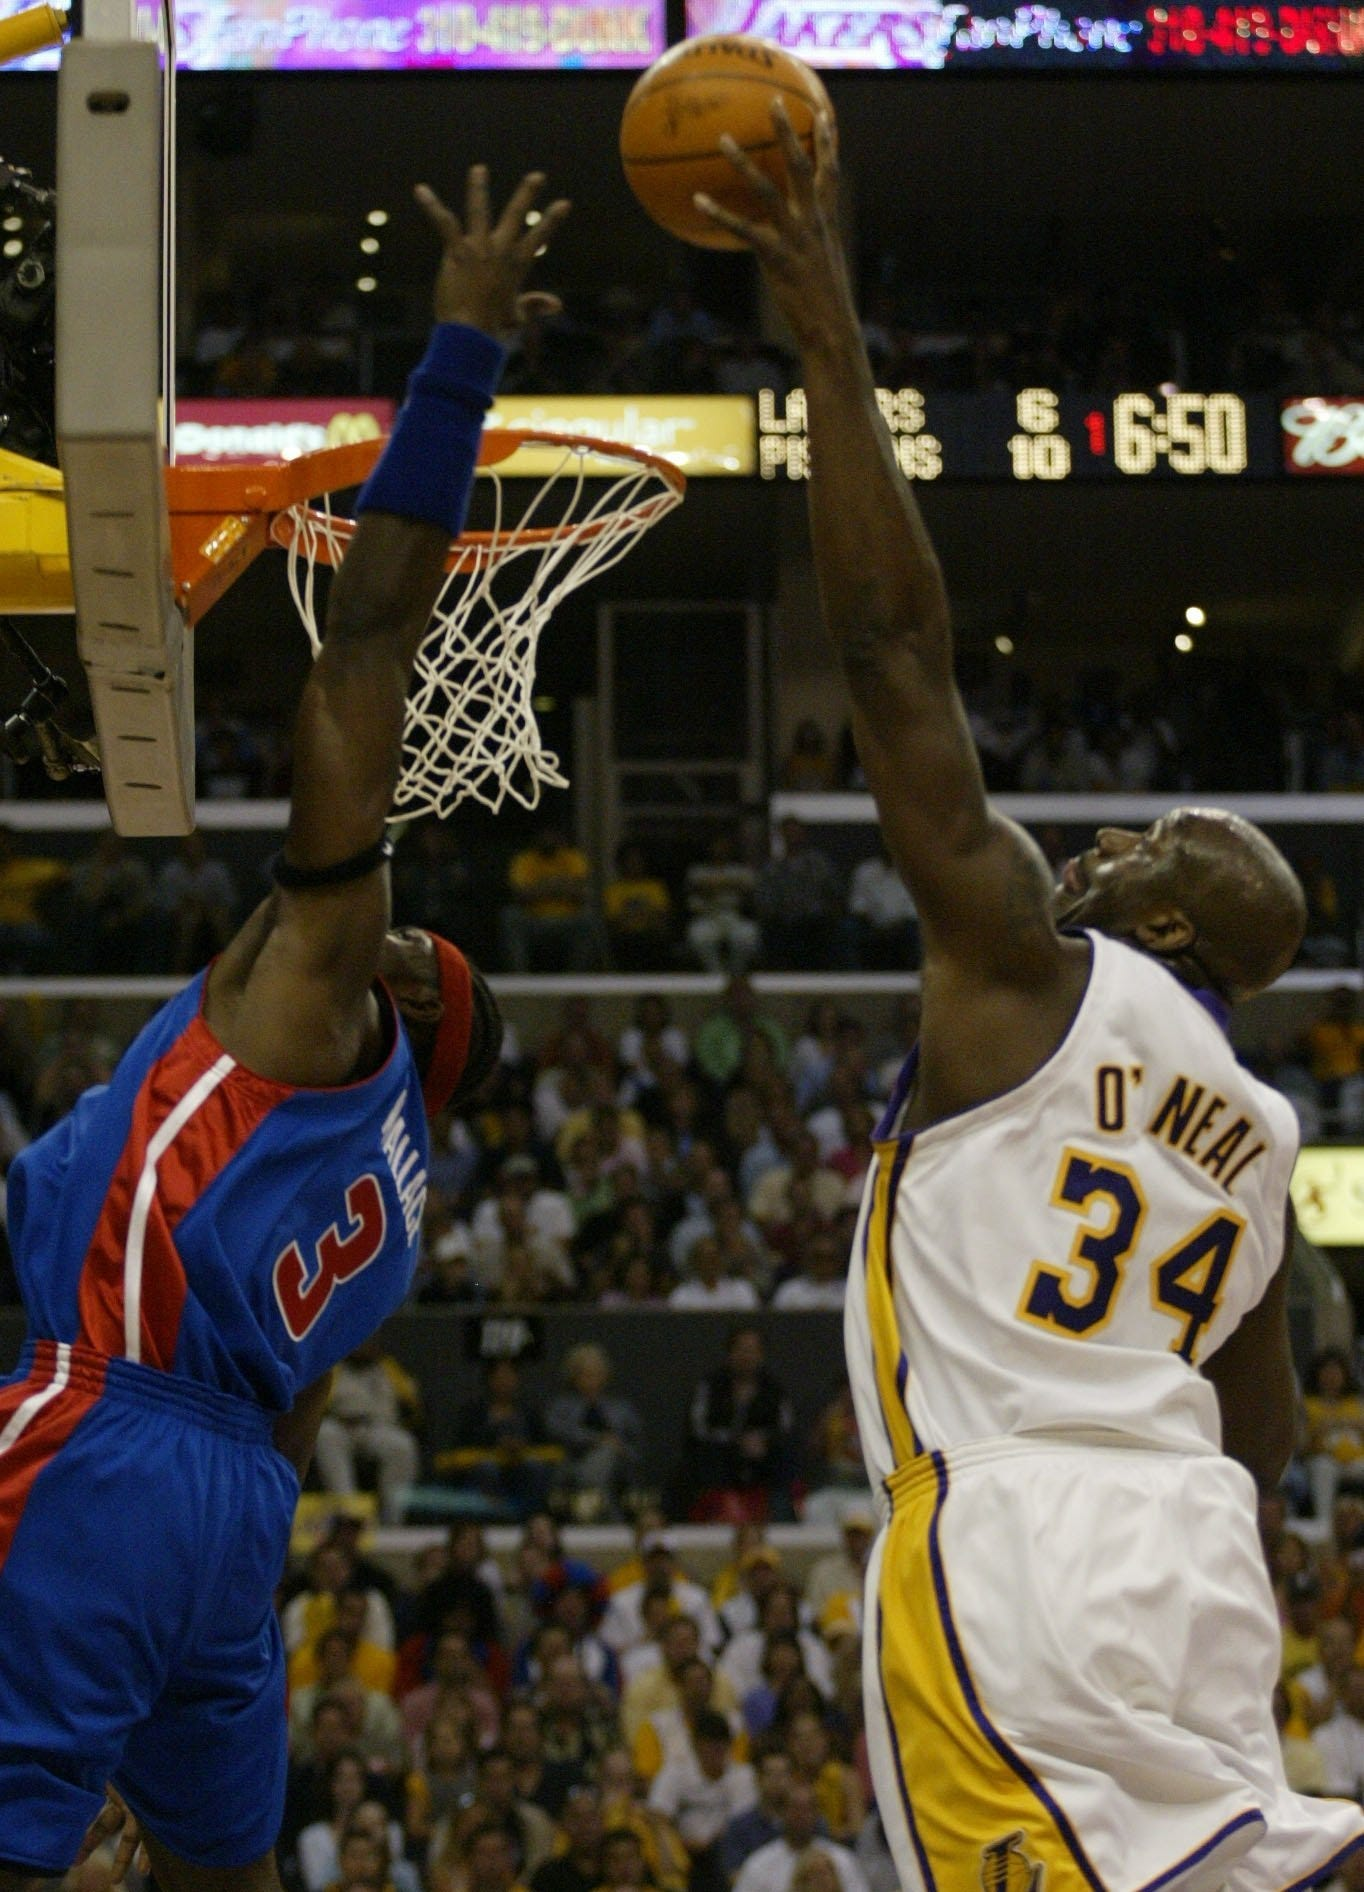 Detroit Pistons flat-out better than 2004 Lakers, proved it in Game 1